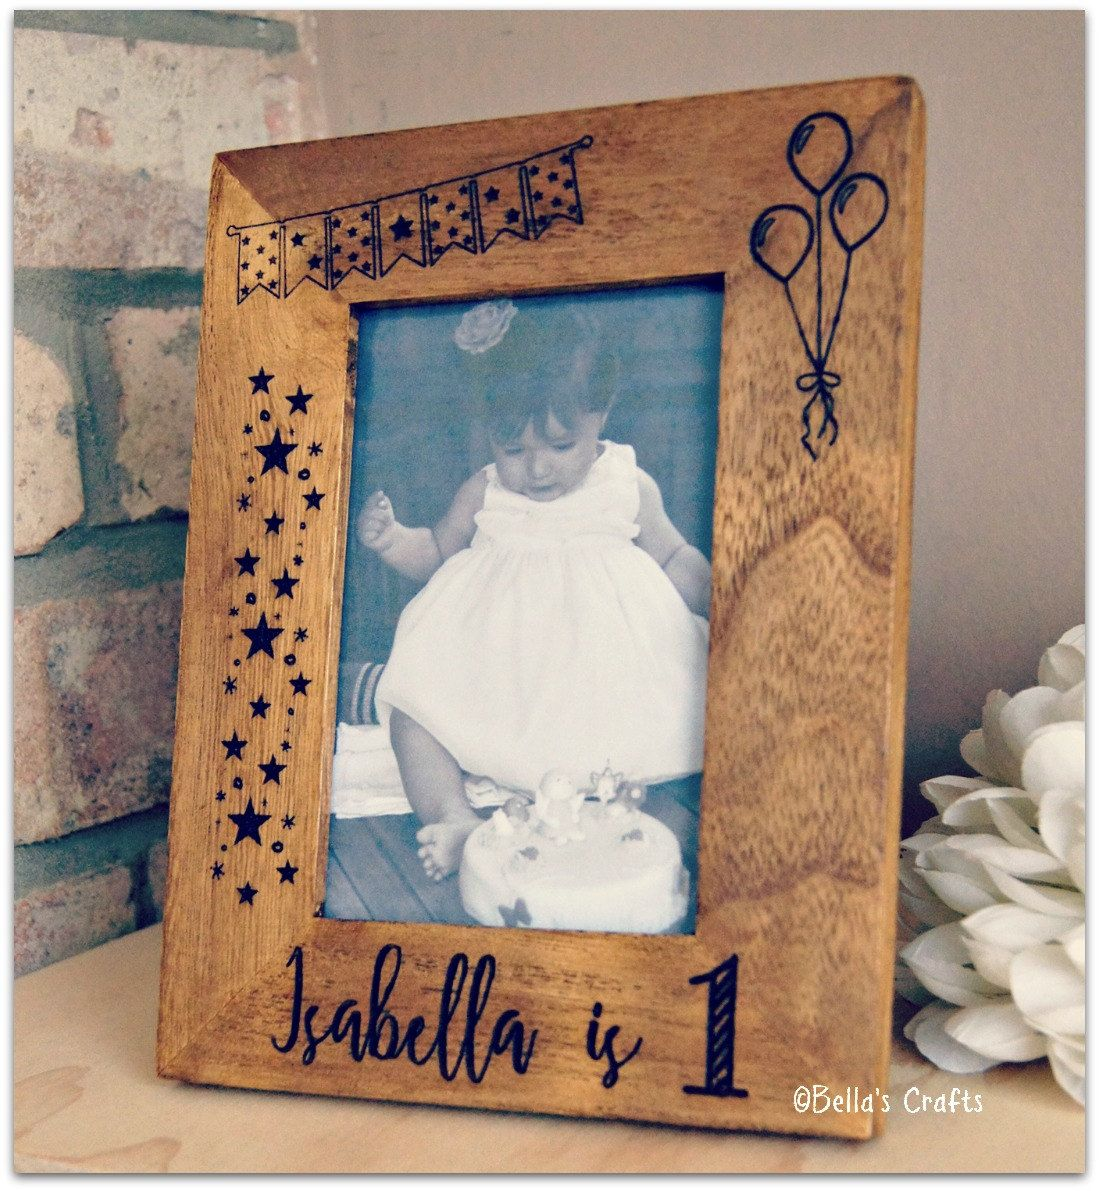 First Birthday Gift Personalised Picture Frame Babys 1st Wooden Rustic Photo Custom By BellasCrfts On Etsy